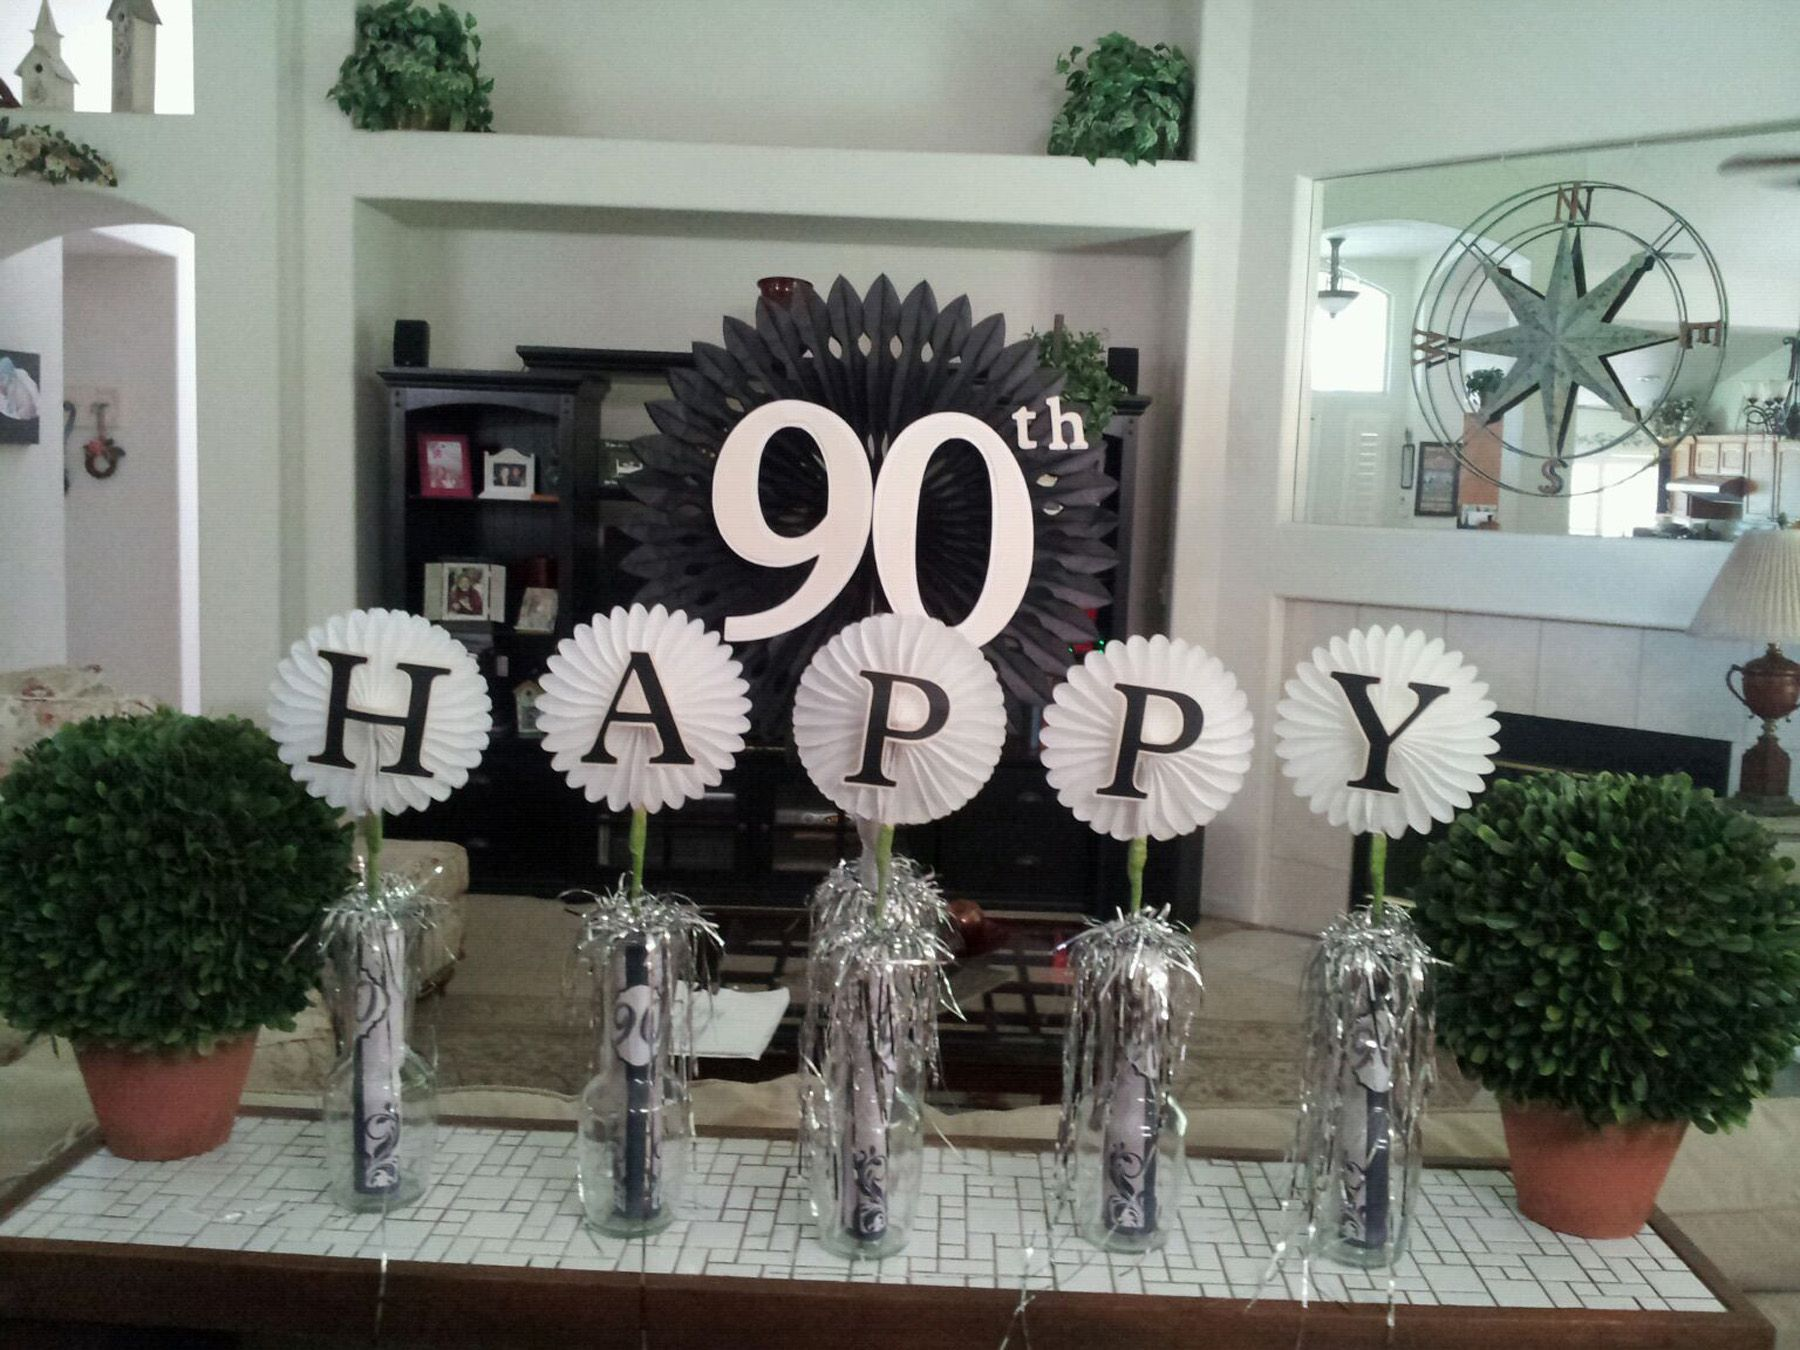 Cake Table Decorations For 90th Birthday Party Does Not Lead To Site Photo Only